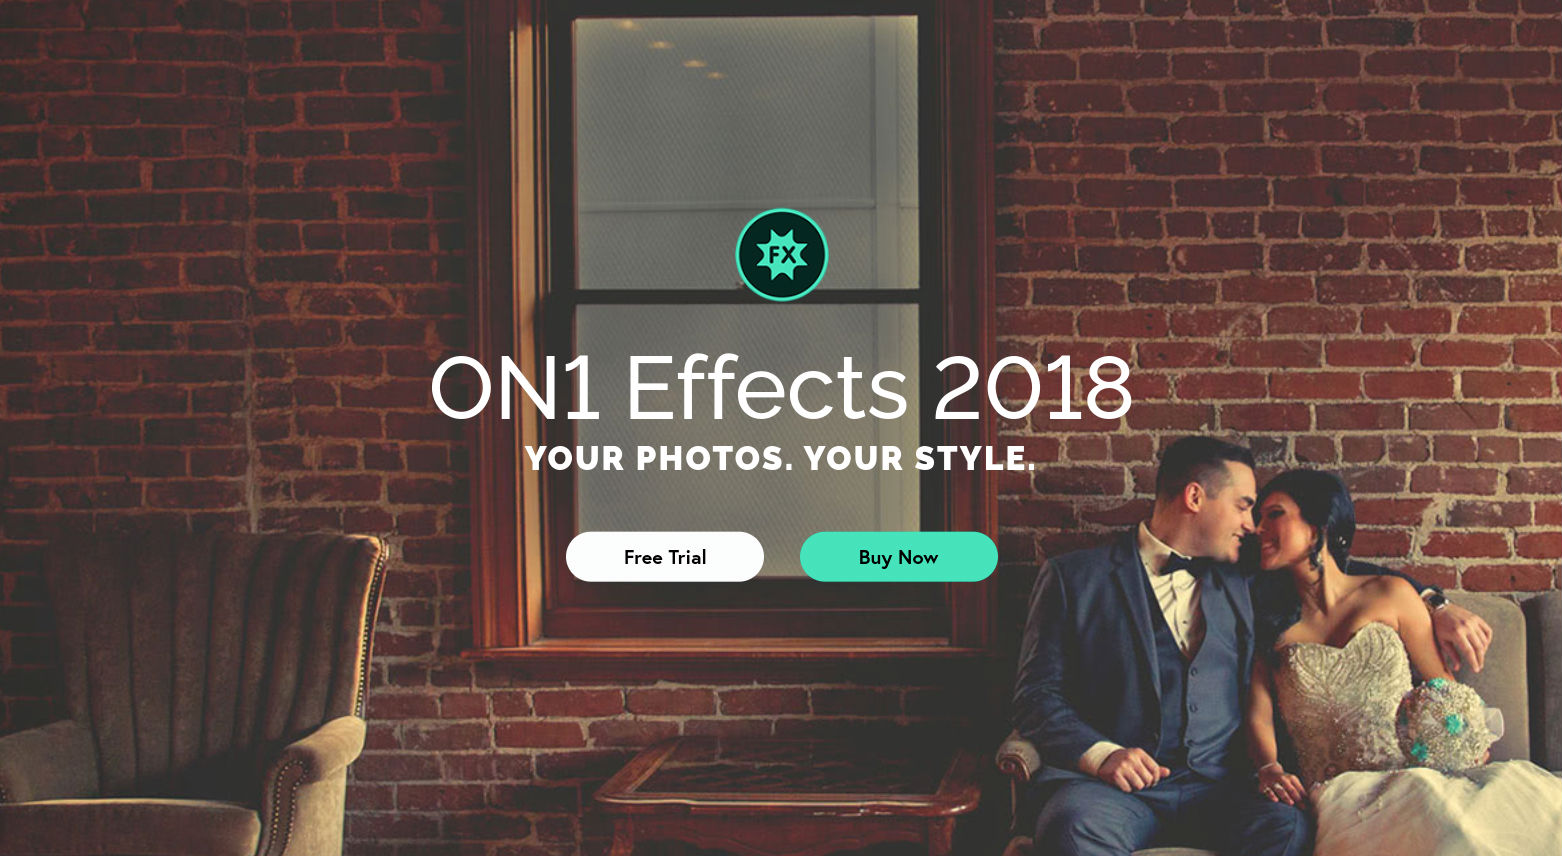 on1 effects 2018 free trial